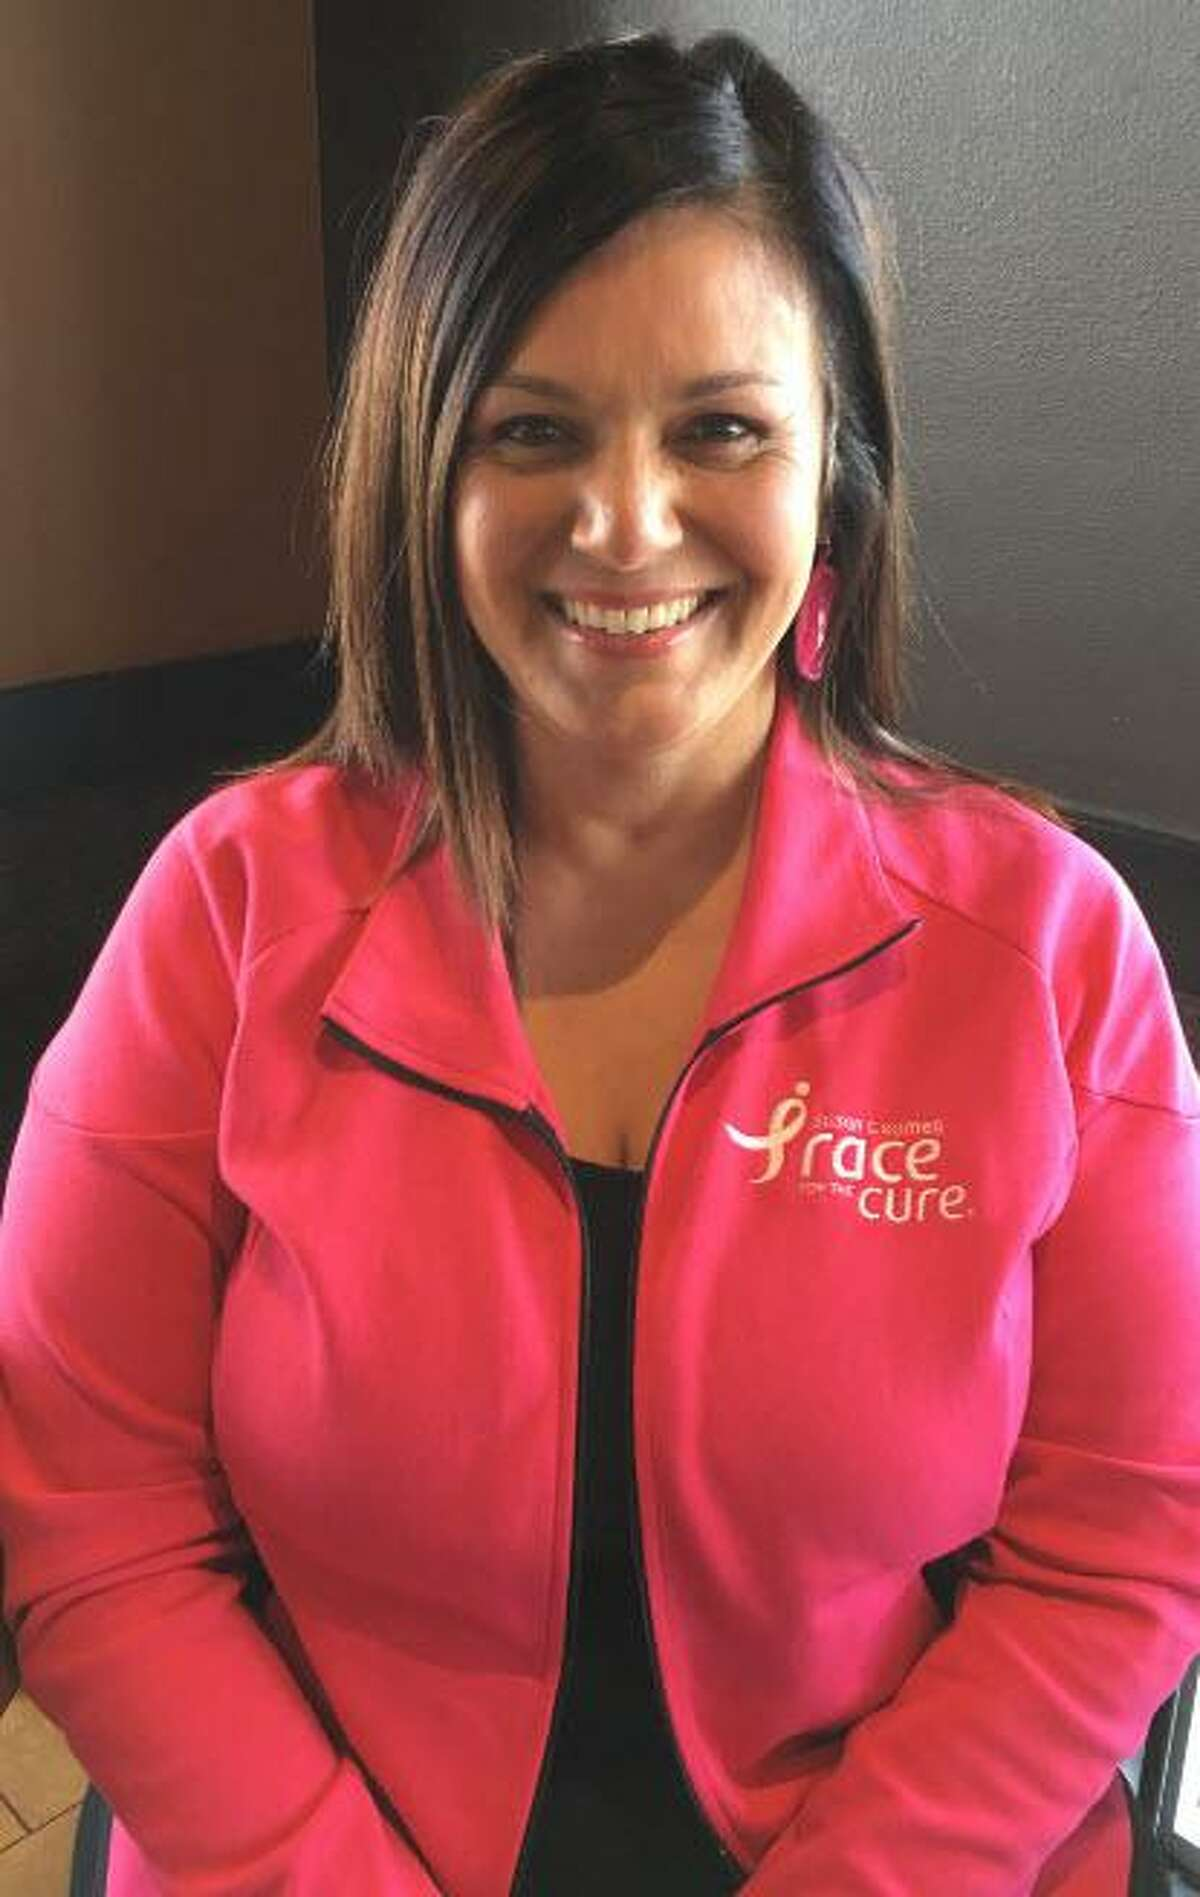 Cindy Saenz, a breast-cancer survivor, advocates for self-exams to detect breast cancer in its early stages.